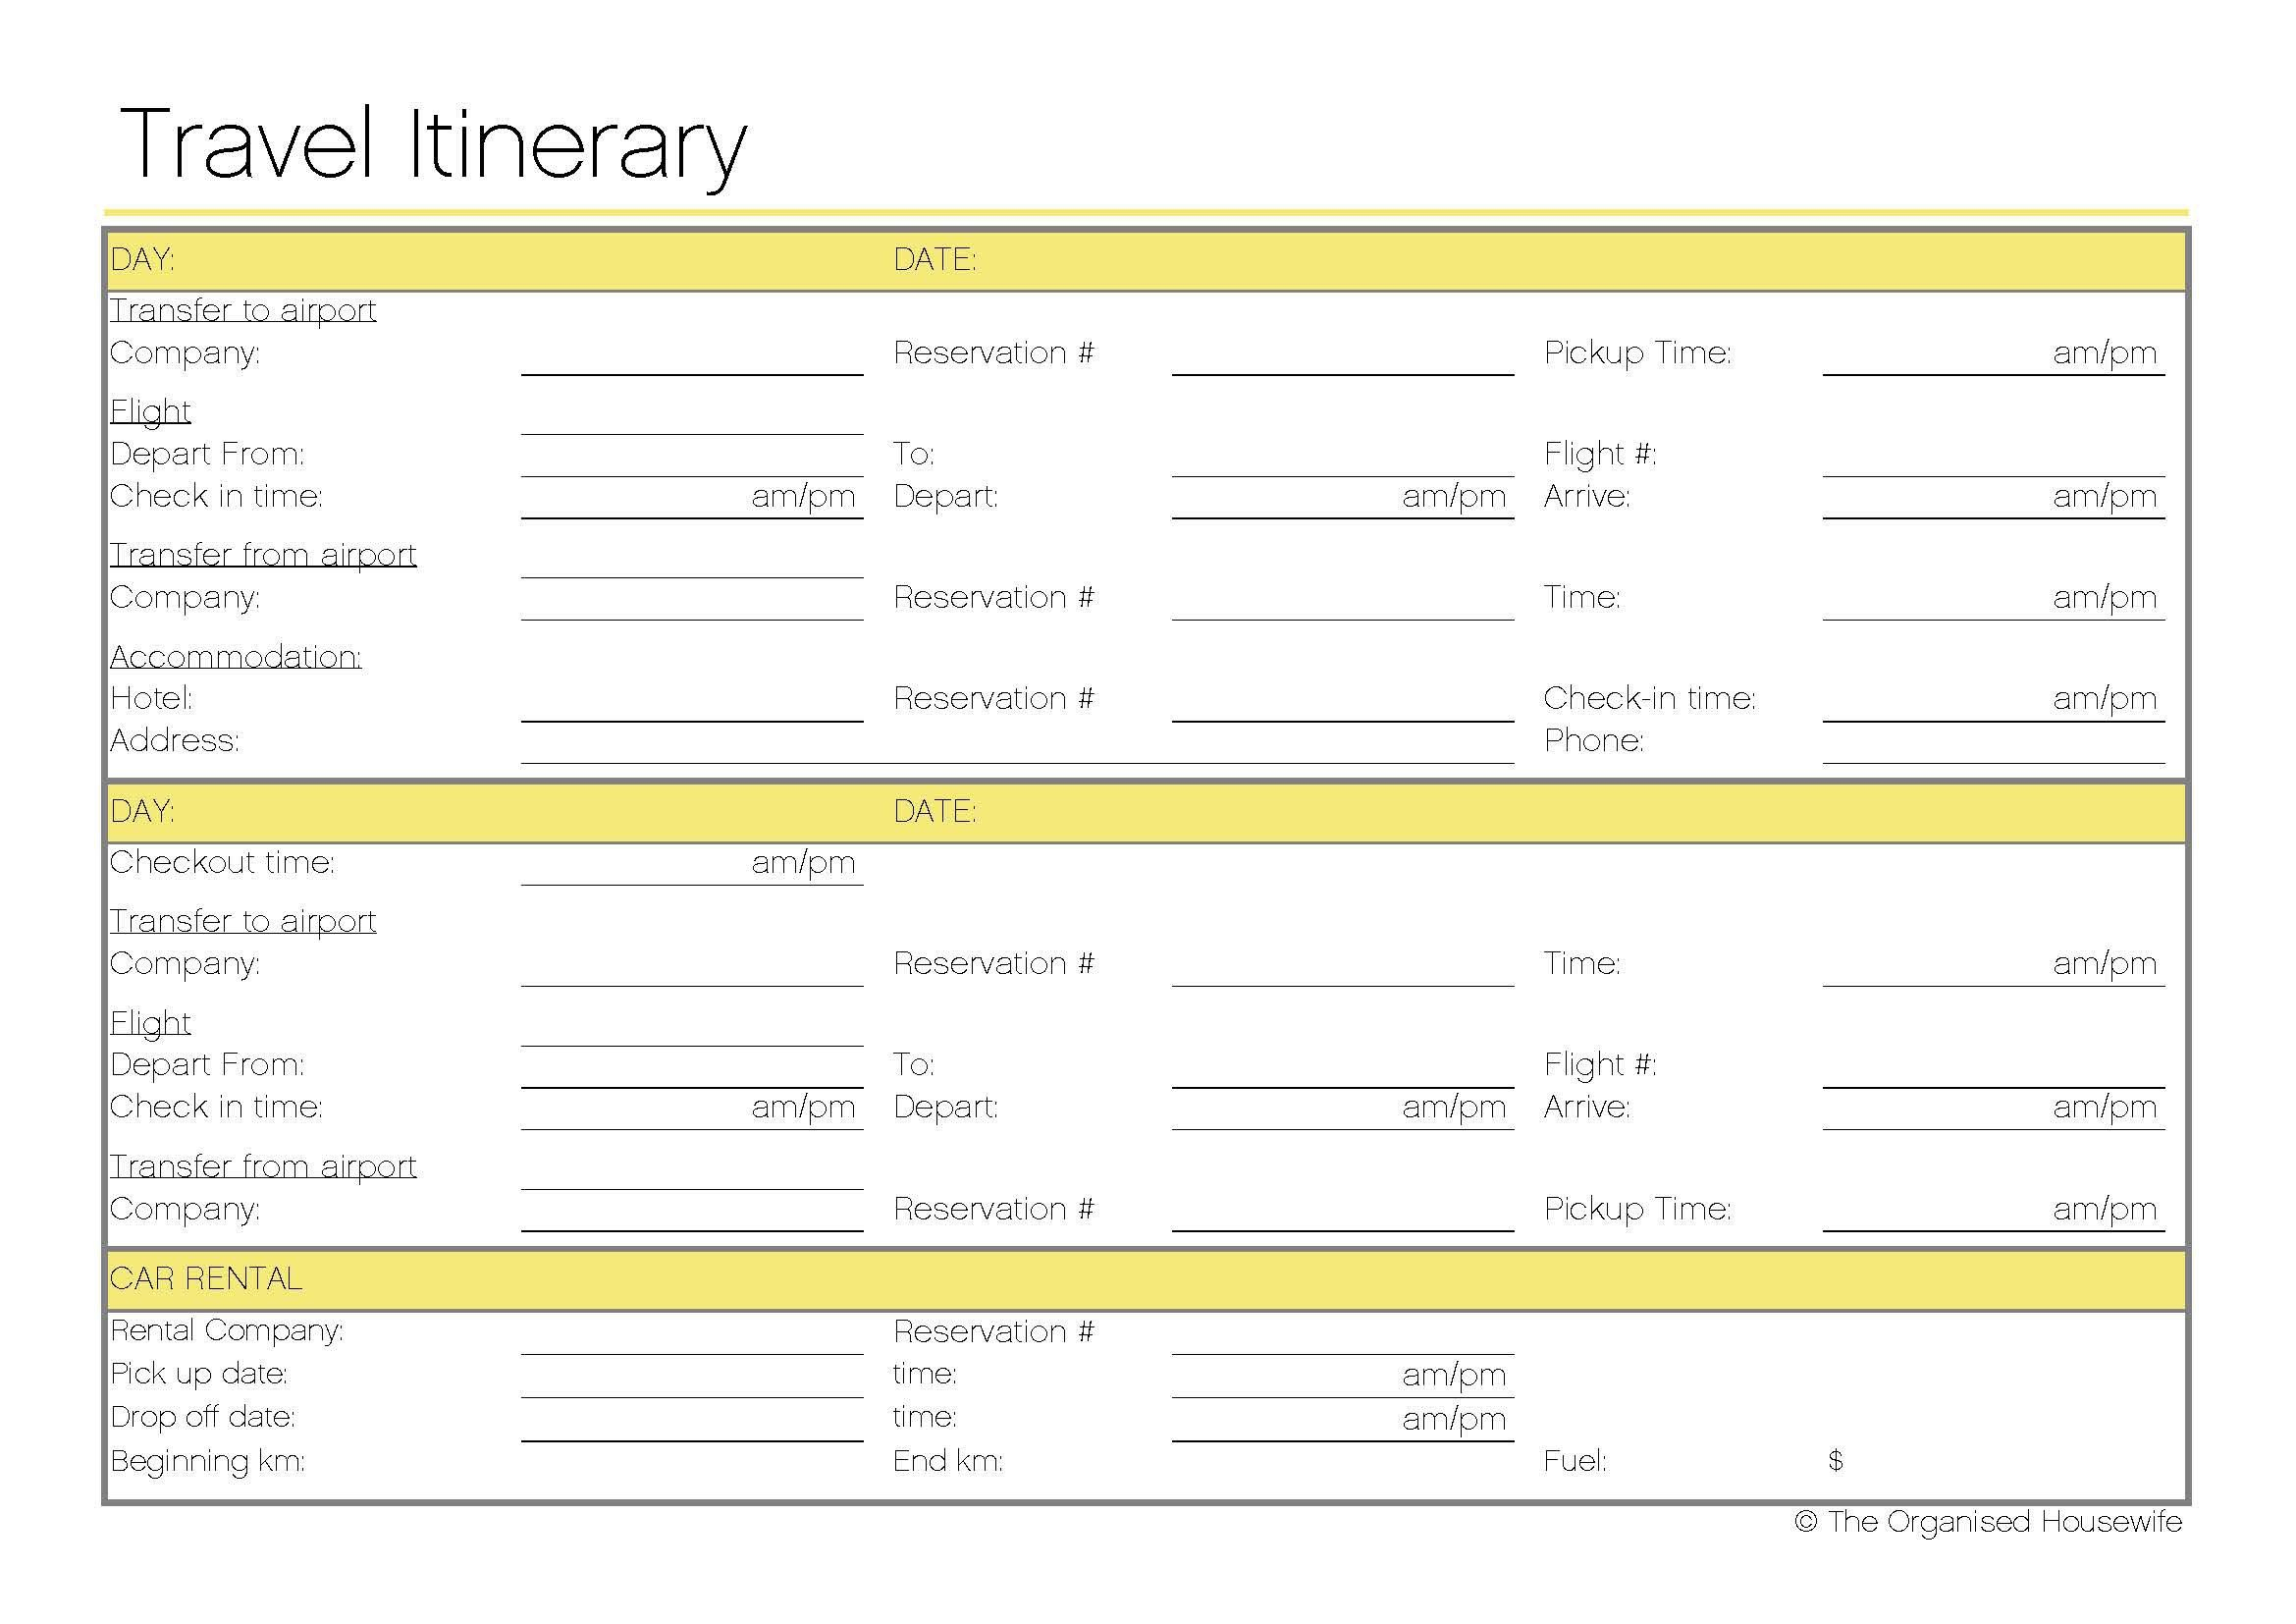 Free Printable - Travel Itinerary | Itineraries, Etc. | Pinterest - Free Printable Itinerary